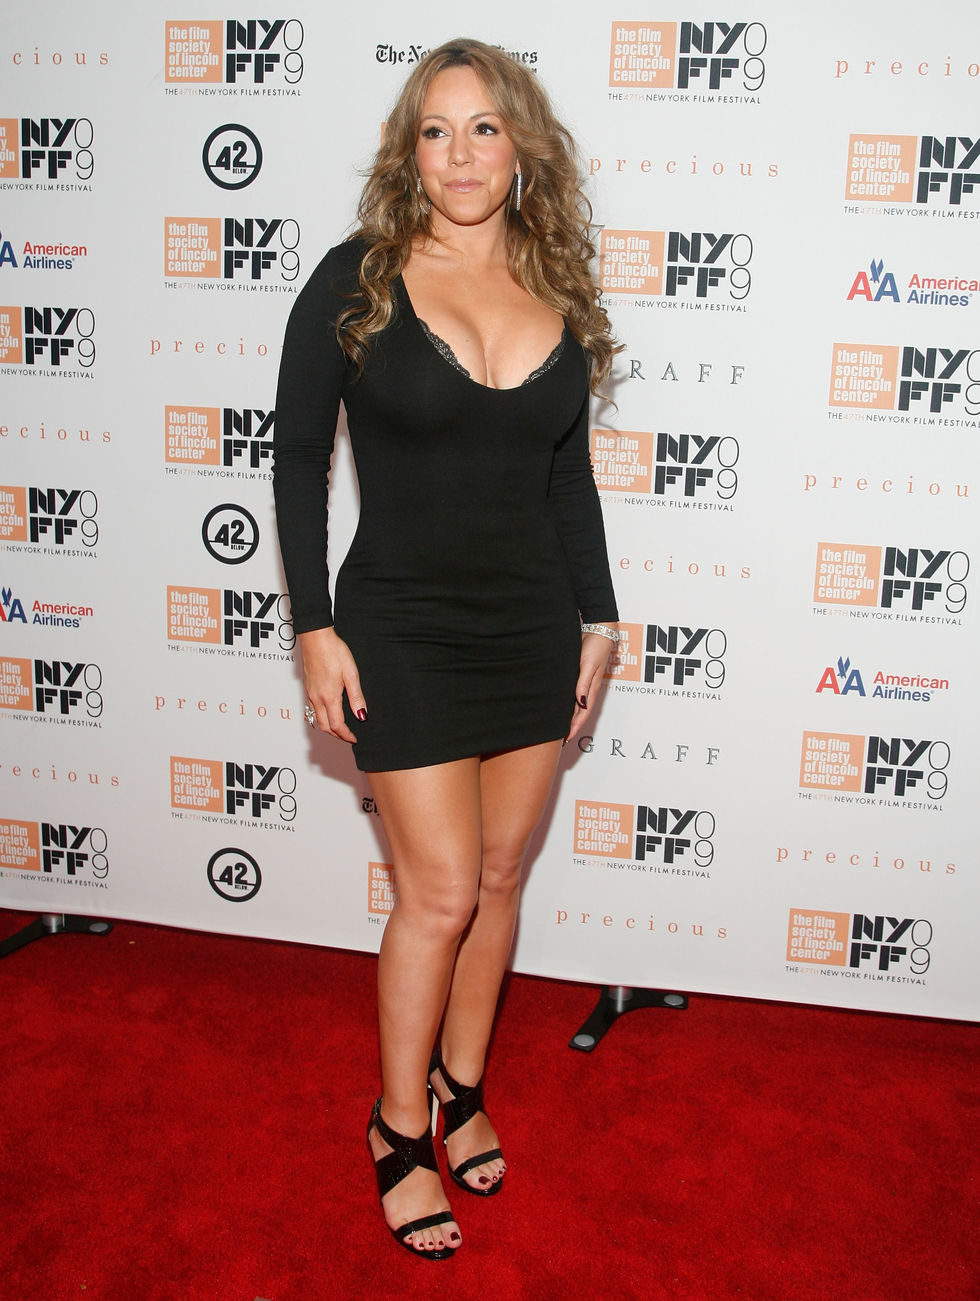 mariah-carey-and-her-cleavage-at-precious-screening-09